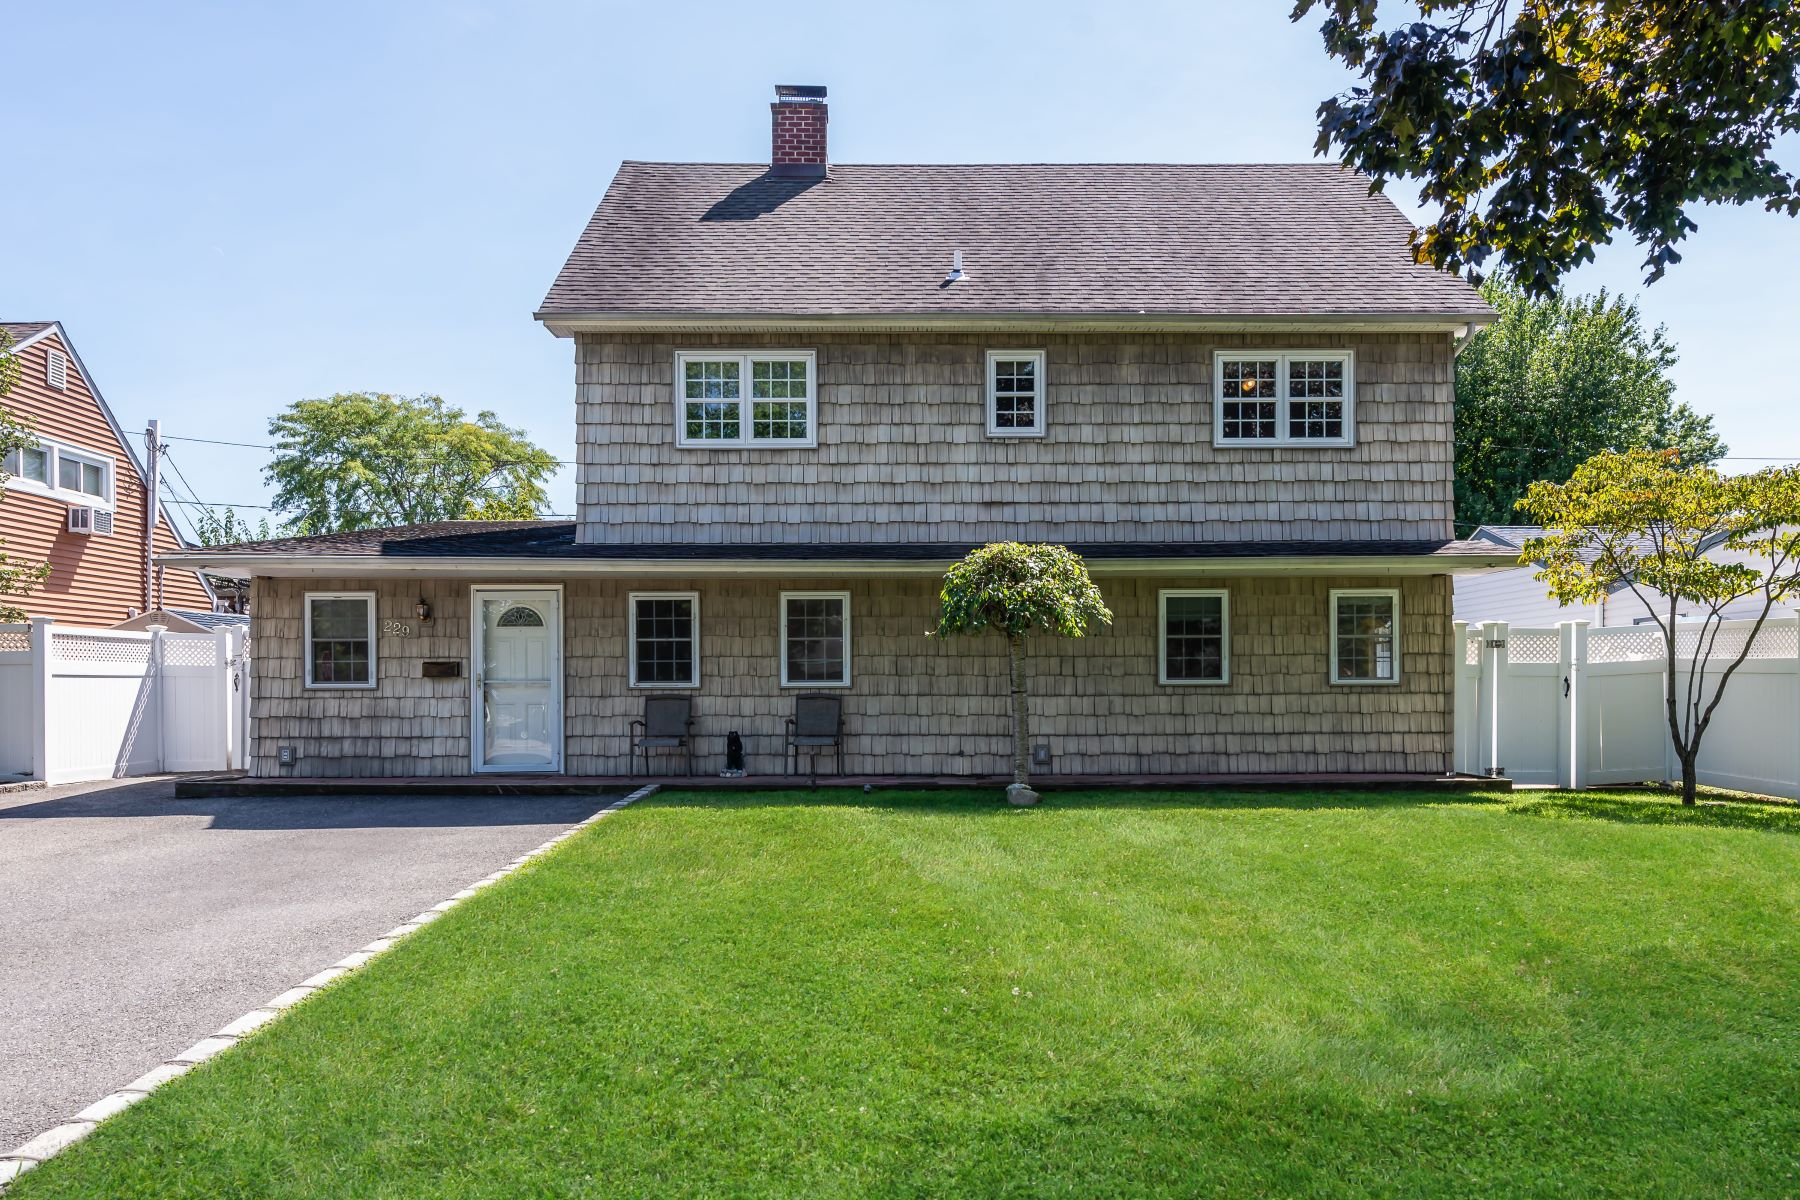 Single Family Homes for Active at Westbury 229 Friends Ln Westbury, New York 11590 United States